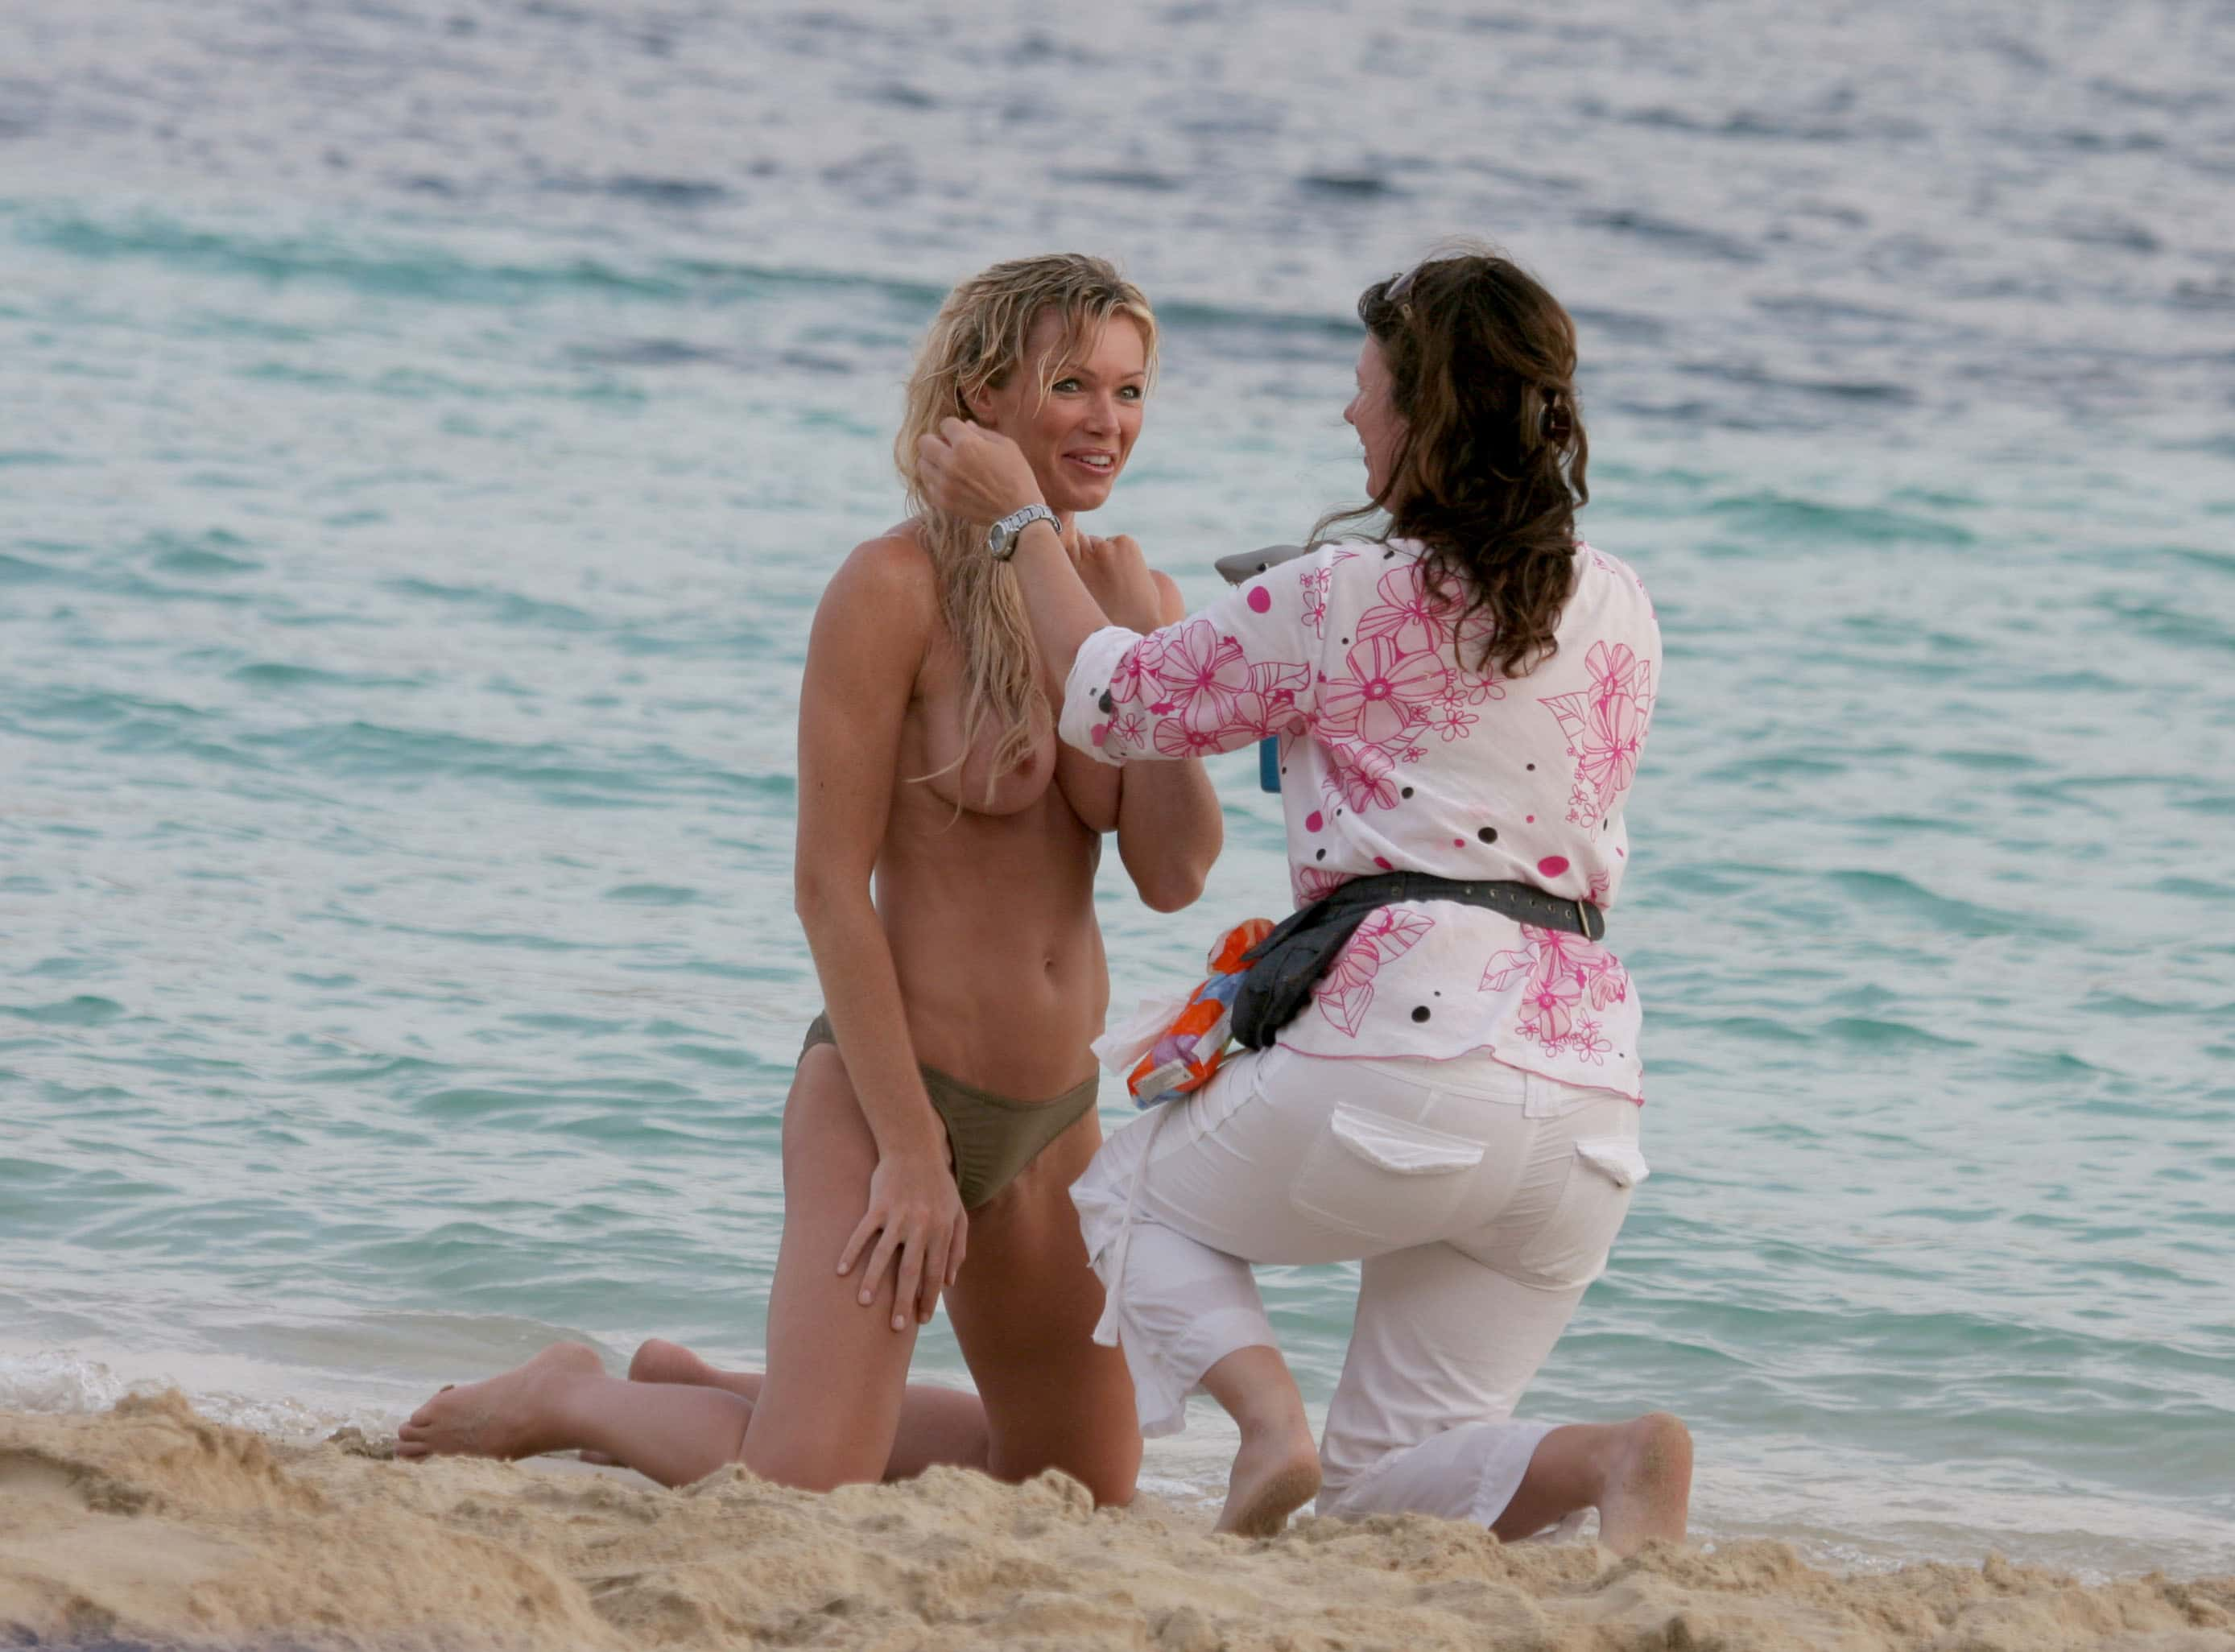 Nell mcandrew nude beach